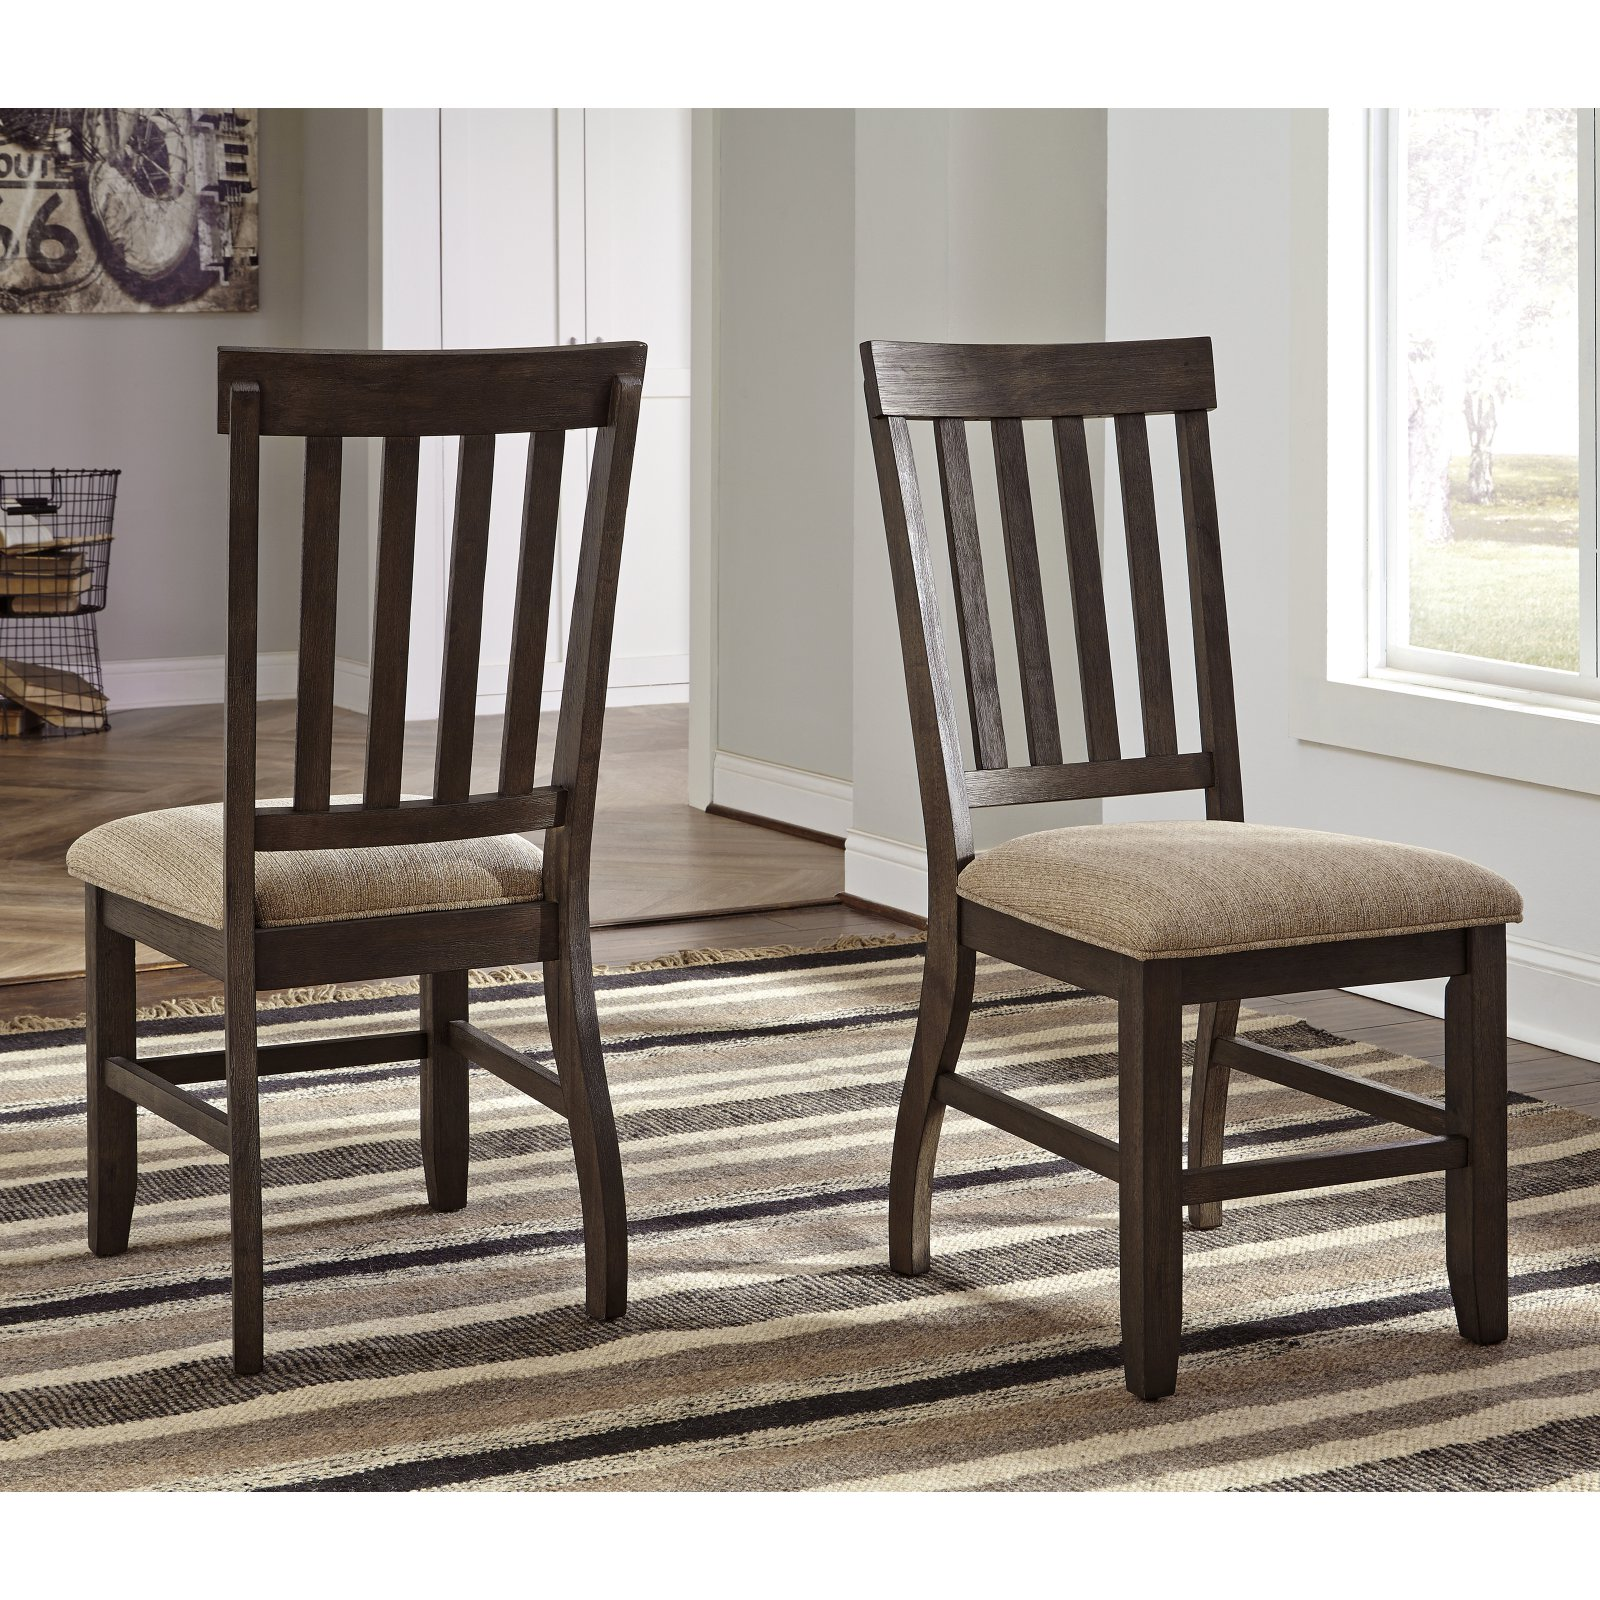 Signature Design by Ashley Dresbar Dining Chair - Set of 2